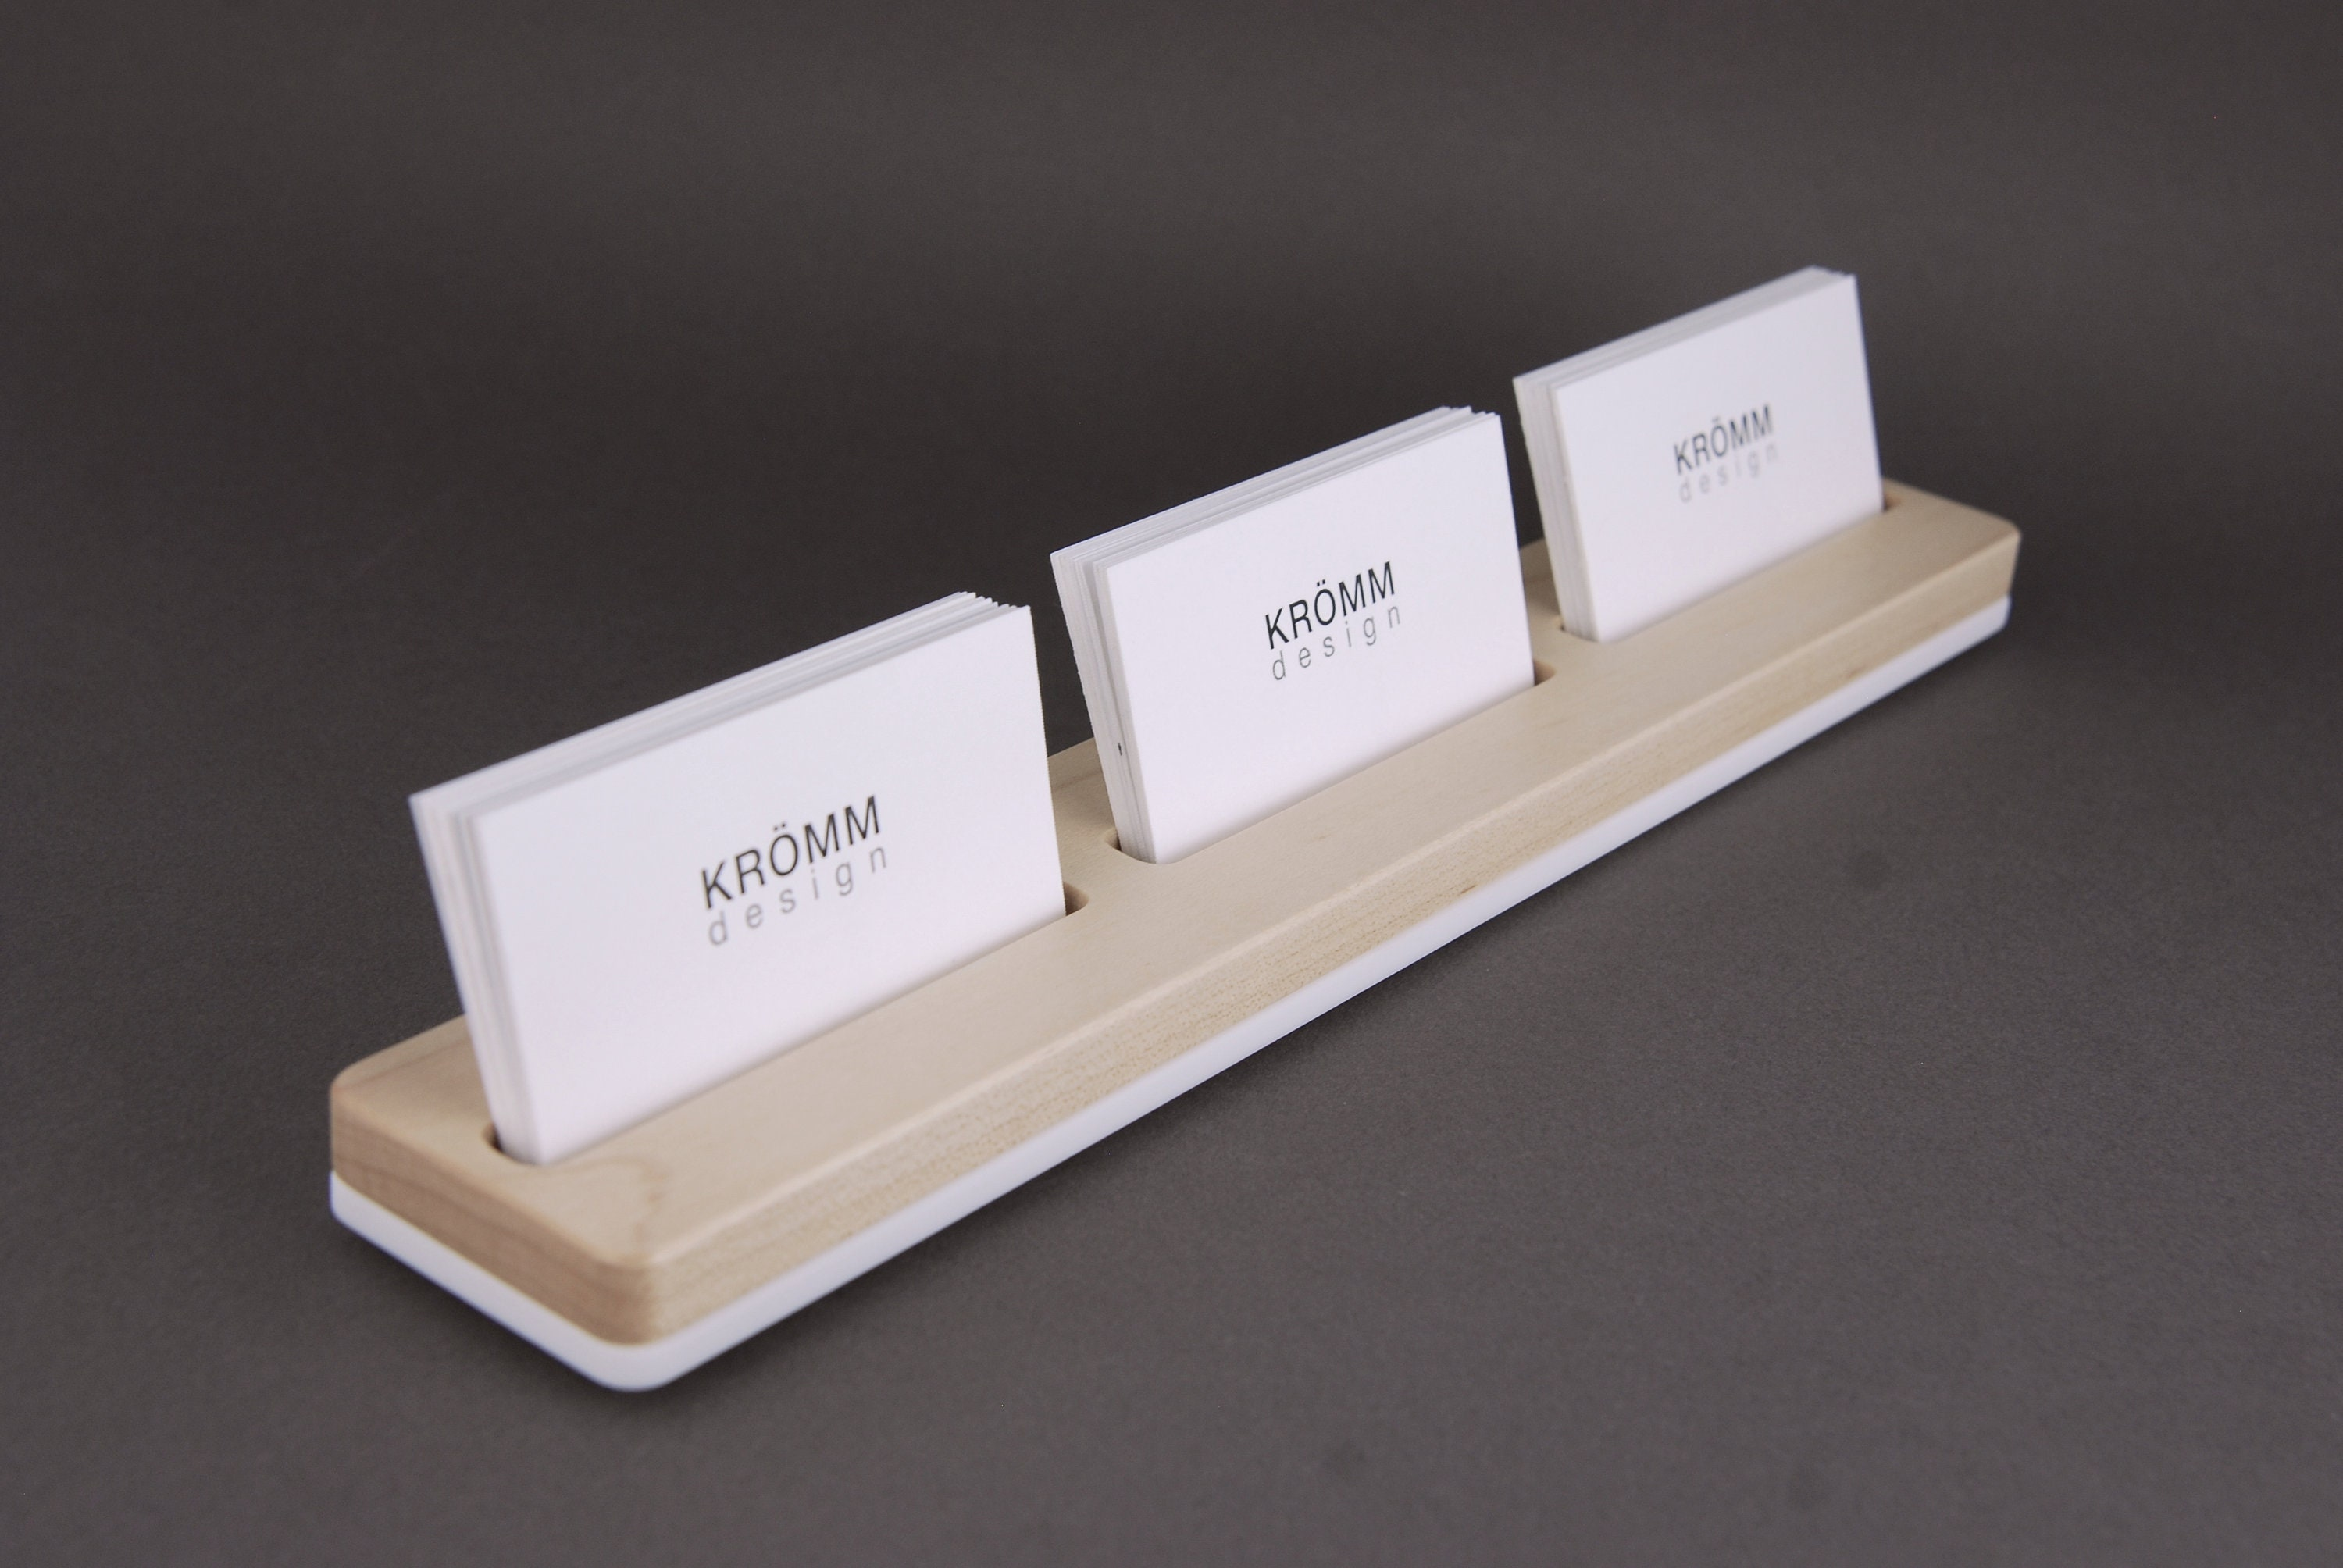 Sugar maple wood business card stand three business card stand sugar maple wood business card stand three business card stand wood business card display maple wood business card holder colourmoves